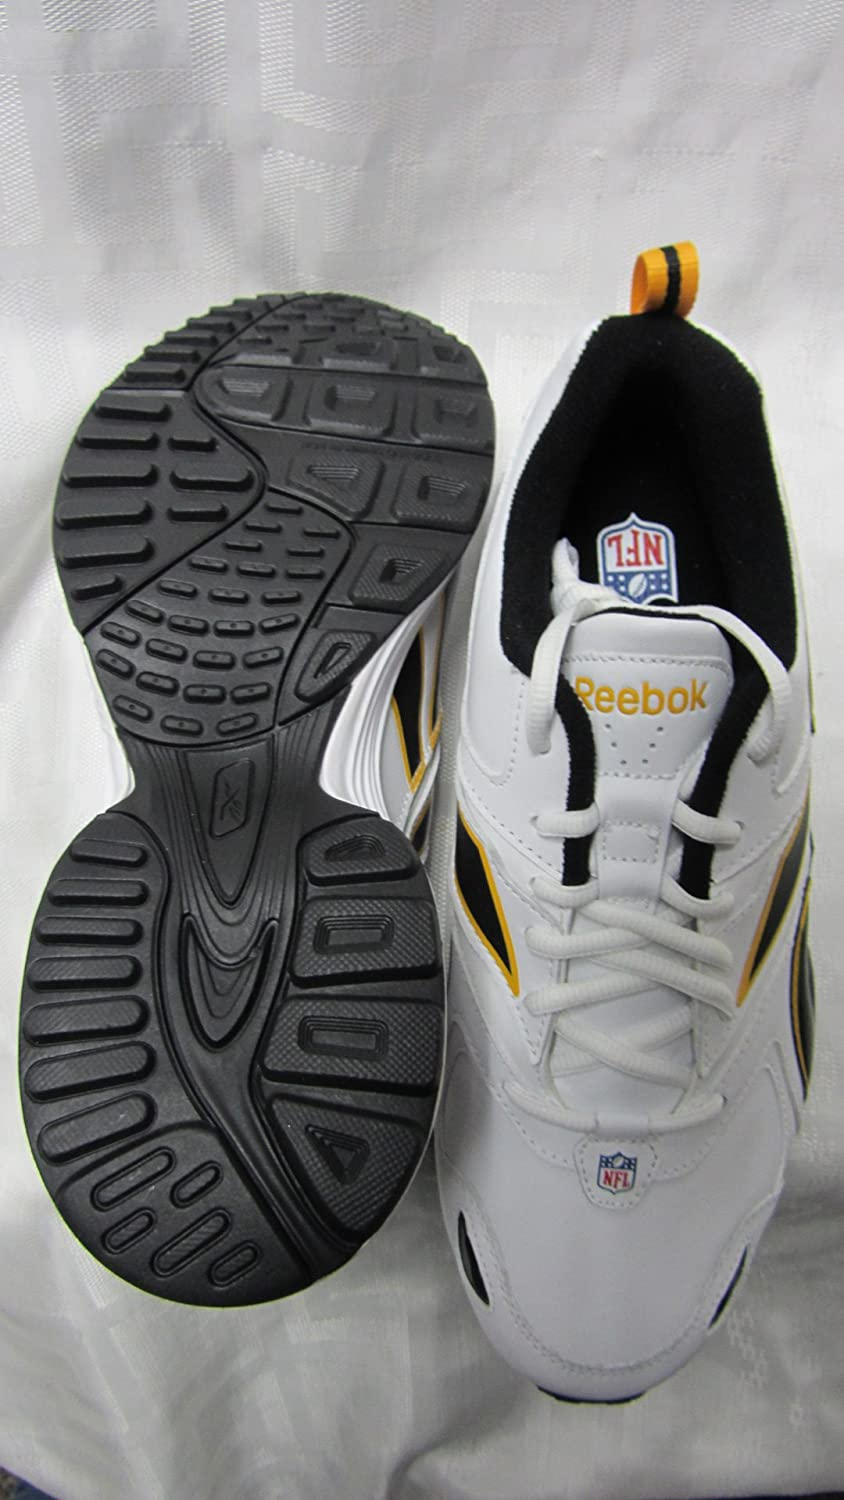 Amazon.com   Reebok Pittsburgh Steelers Mens Size 8 Pro Evaluate Trainer  White Black Gold Shoes Sneakers AMZ-R 146 (F1 1 sz8)   Sports Fan T Shirts    Sports ... d117ab31e